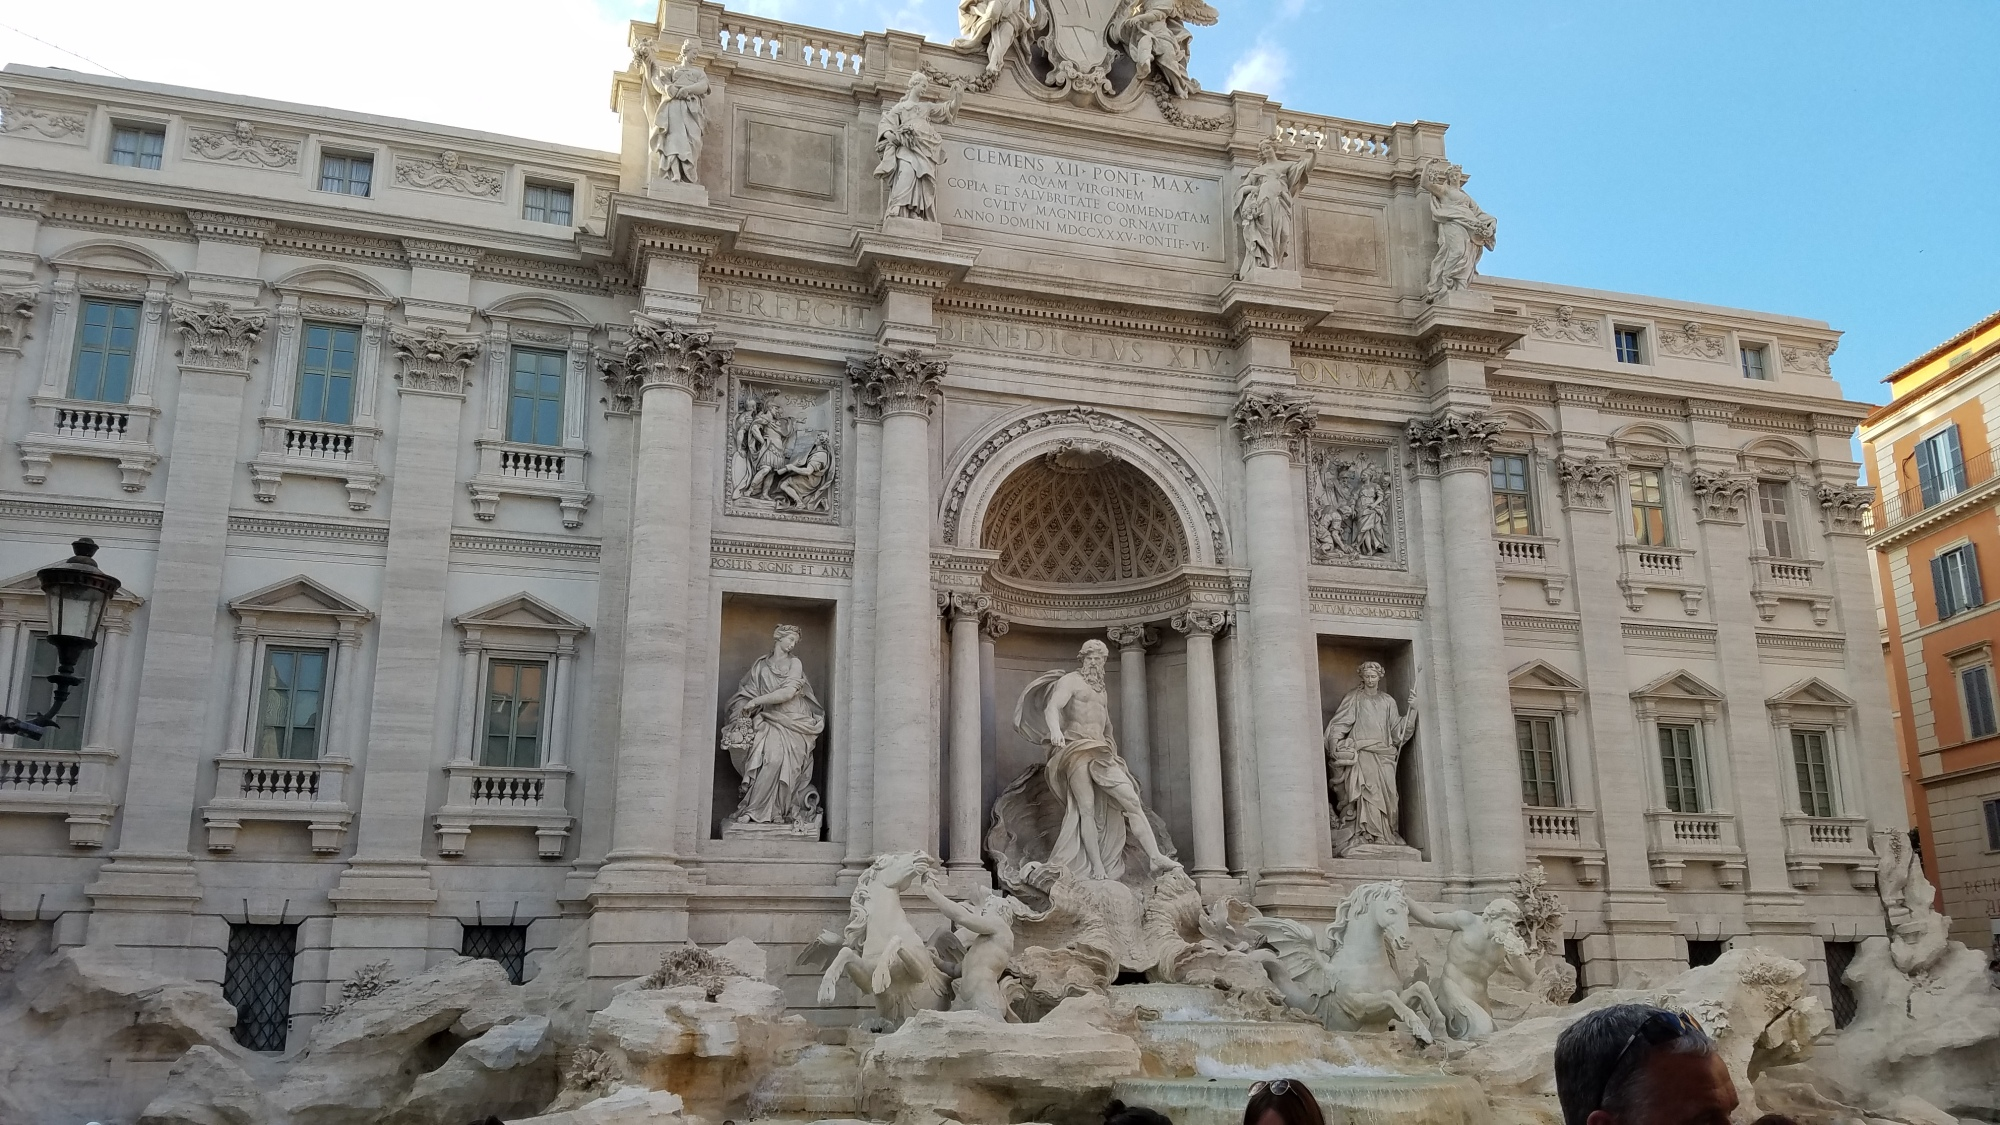 italy travel tip: do the best of rome free walking tour | The best thing you can do in any new place is go on a walking tour -- a FREE walking tour is even better!